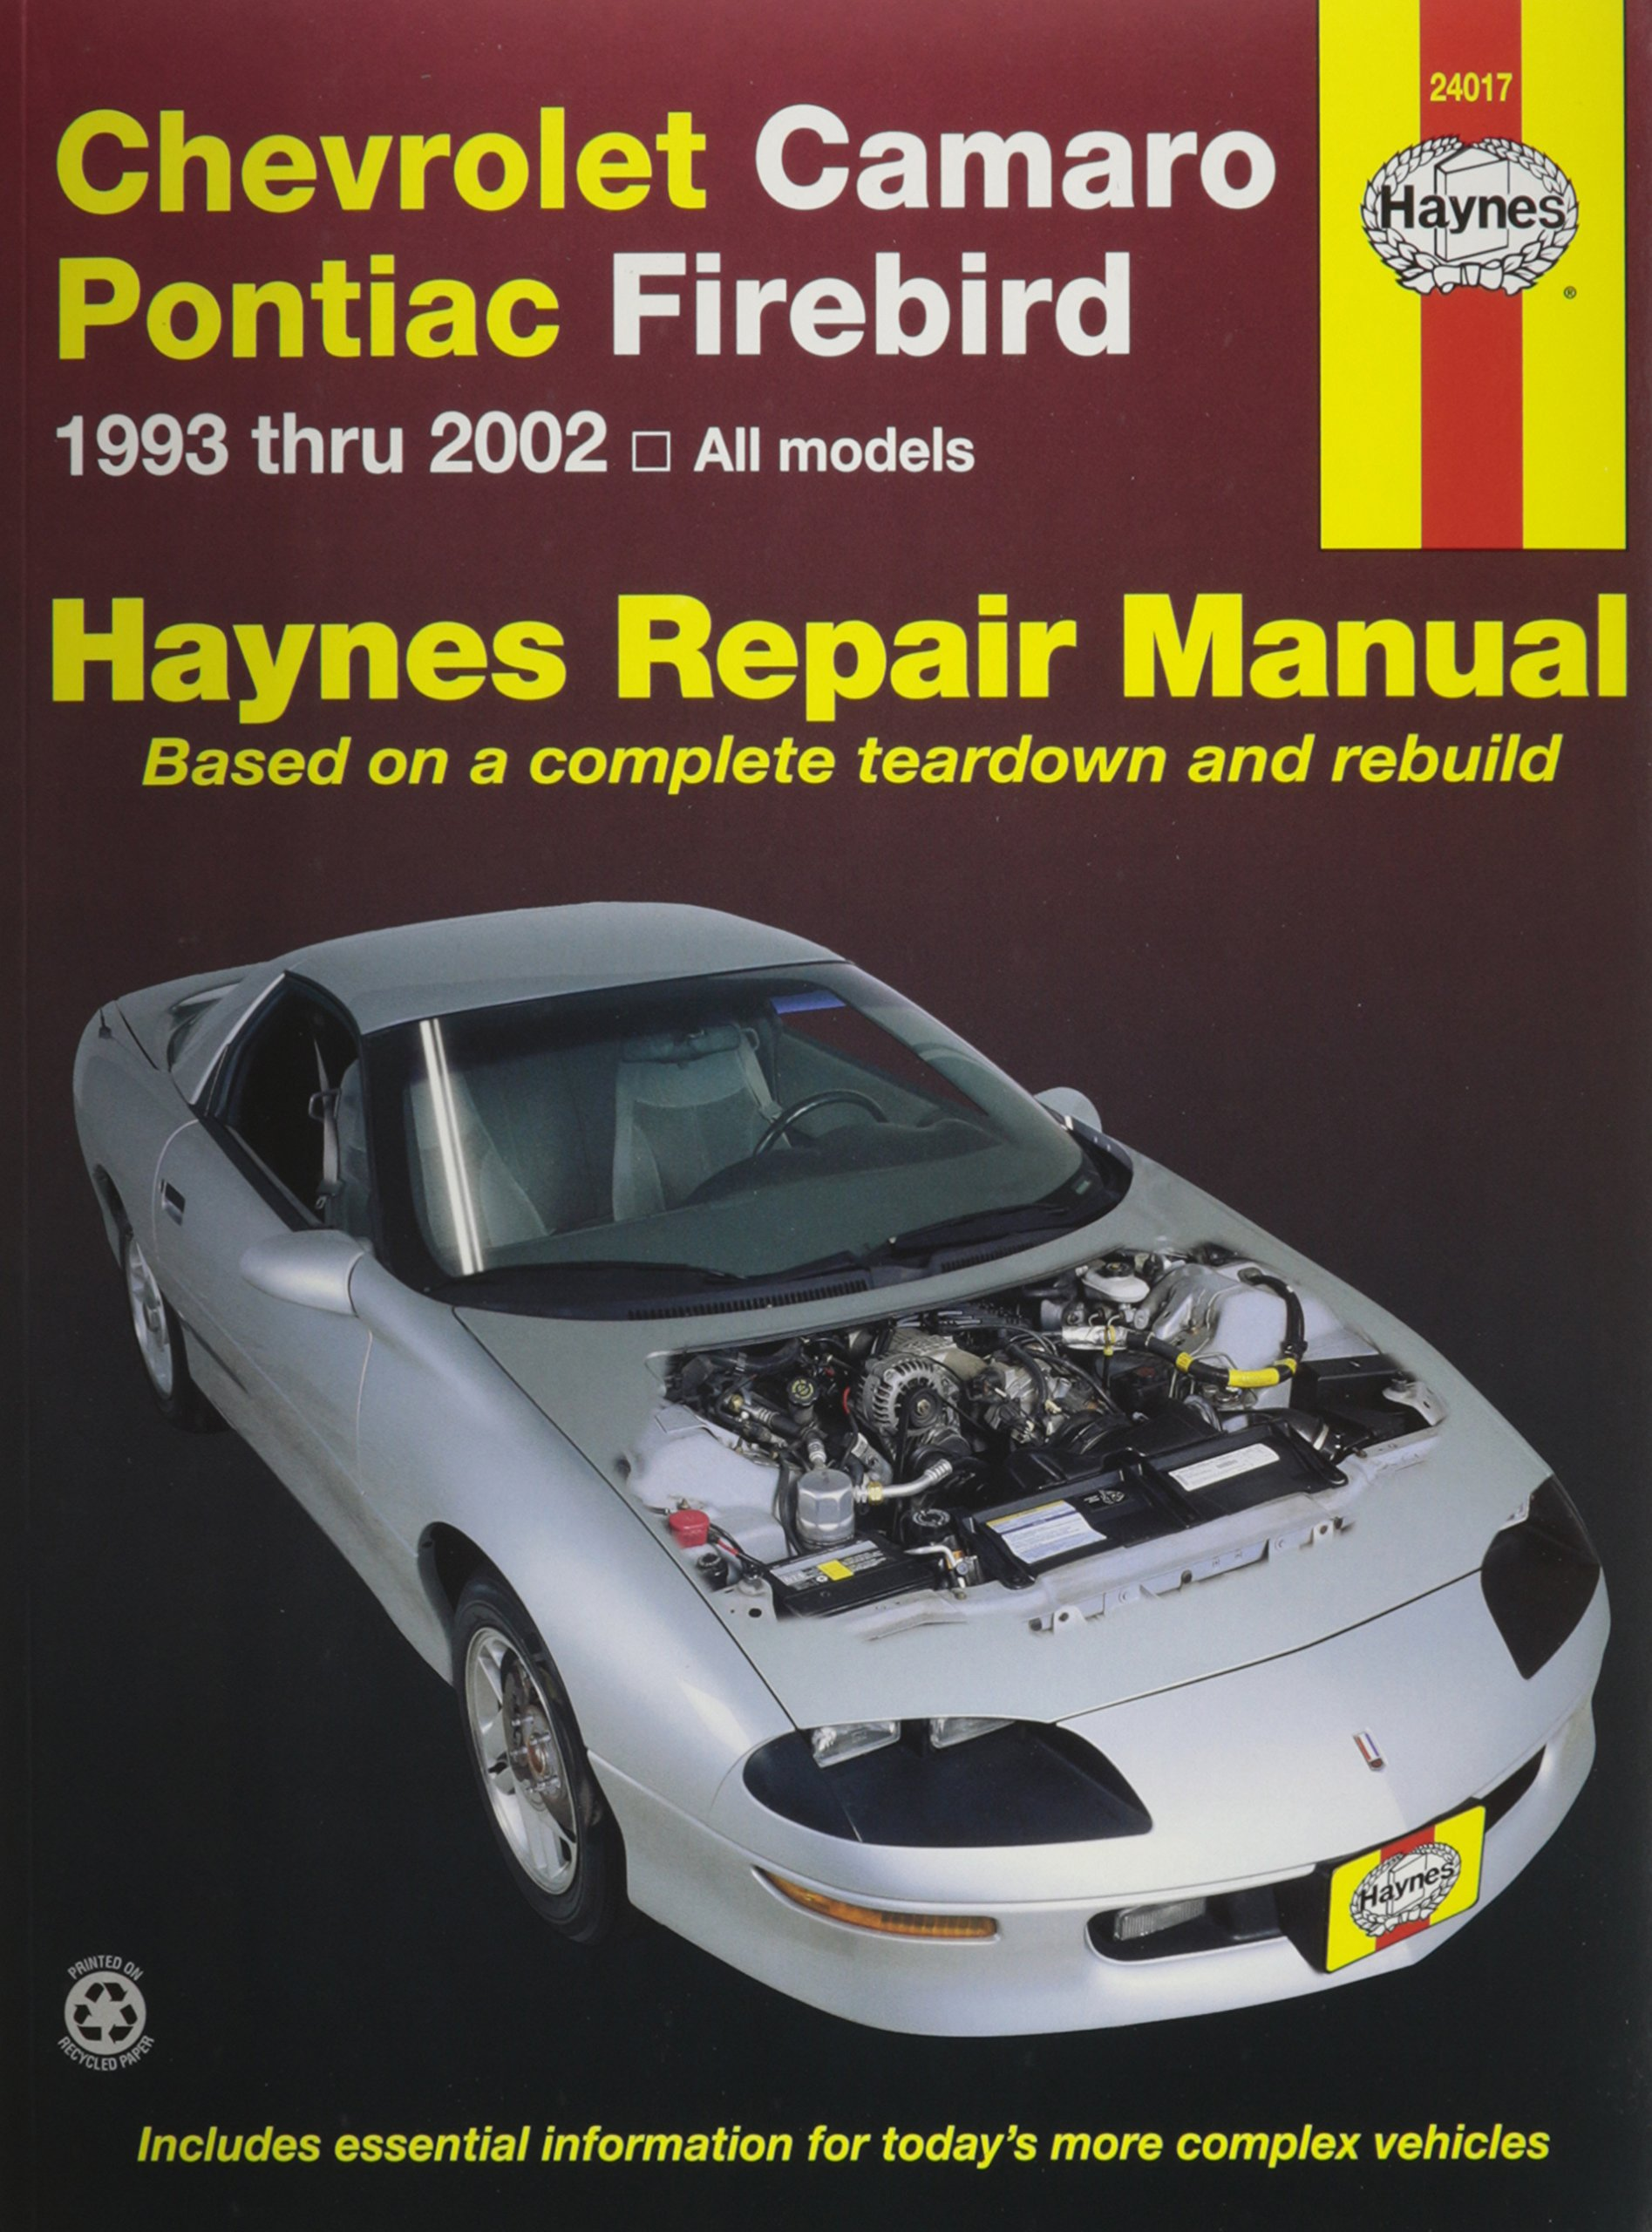 Amazon.com: HAYNES REPAIR MANUAL for CAMARO/FIREBIRD NUMBER 24017  (0038345240171): Books